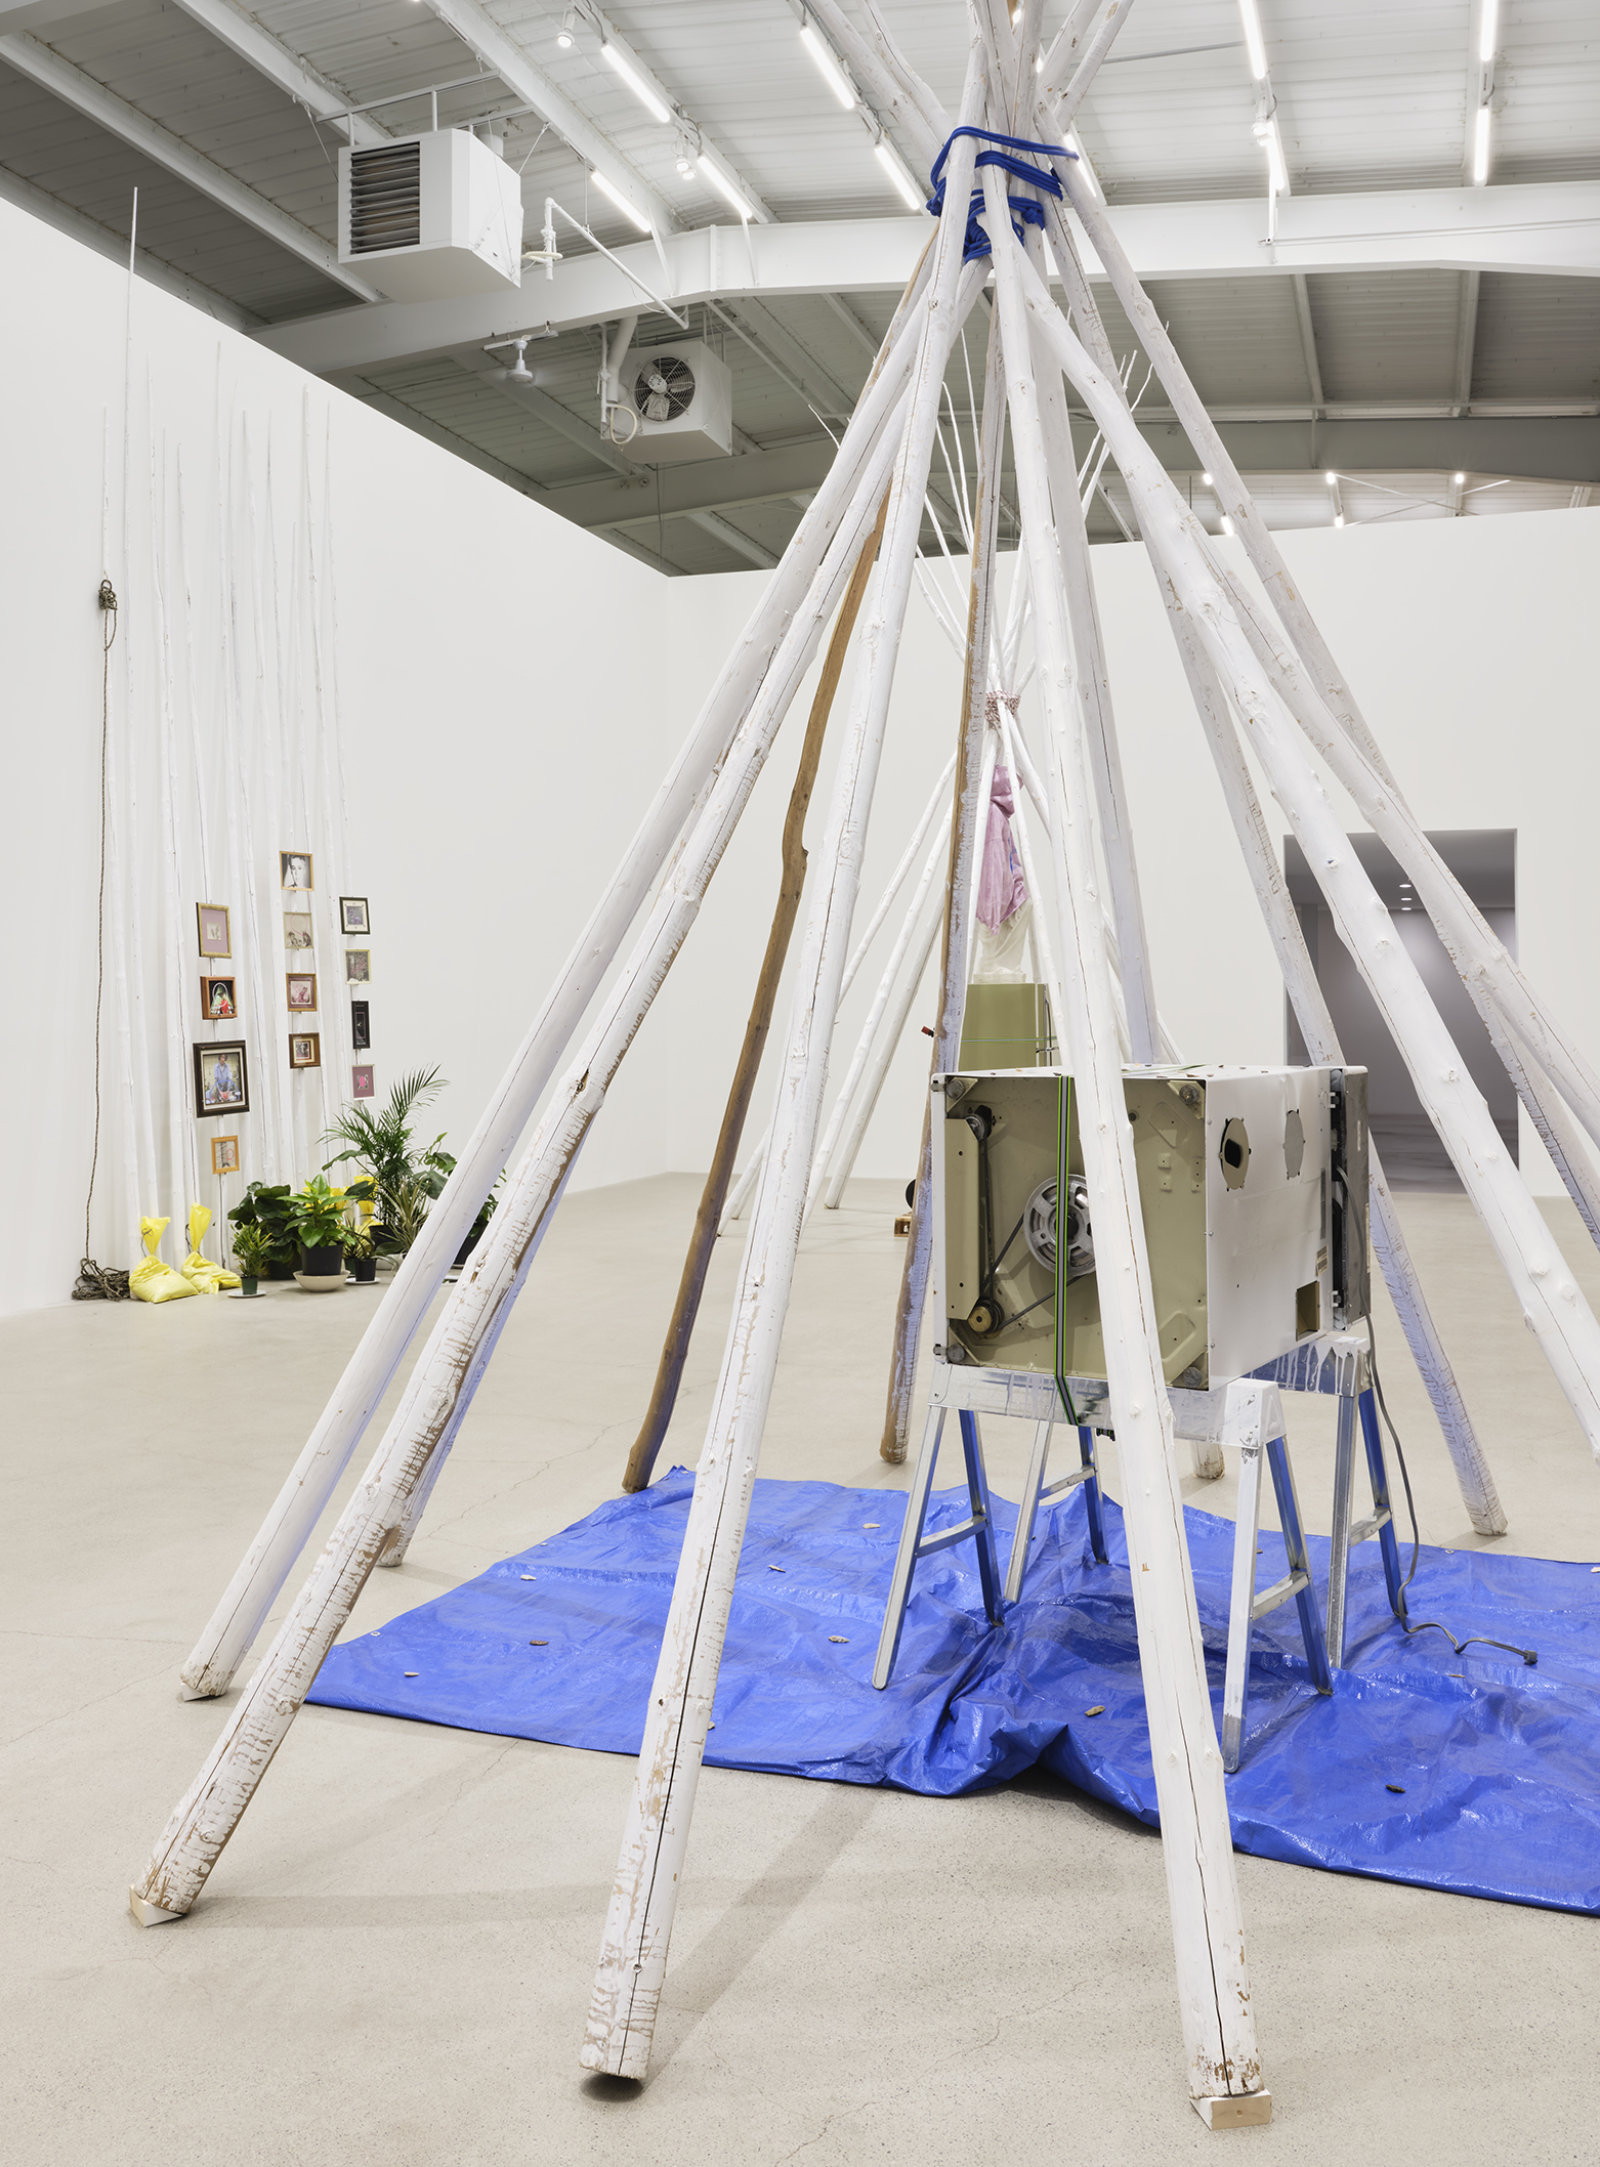 Duane Linklater, anteclovis (detail), 2020, teepee poles, paint, nylon rope, tarpaulin, steel sawhorses, washing machine, tie-down strap, arrowheads, 230 x 158 x 158 in. (584 x 401 x 401 cm)